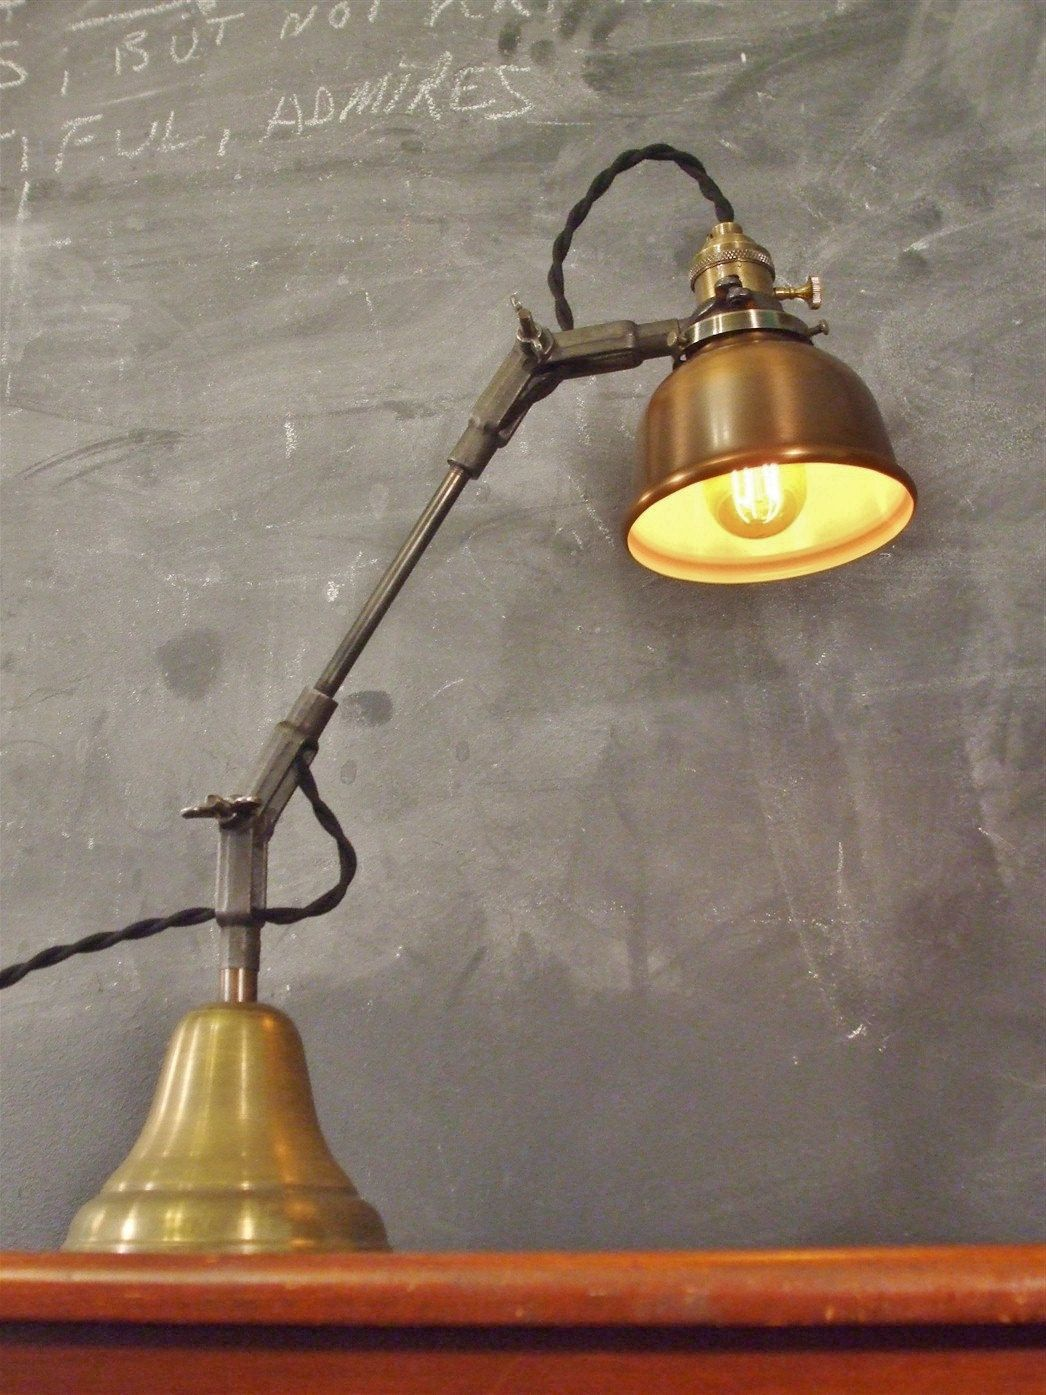 Antique desk lamps - Vintage Industrial Desk Lamp Machine Age Task Light Cast Iron Steampunk